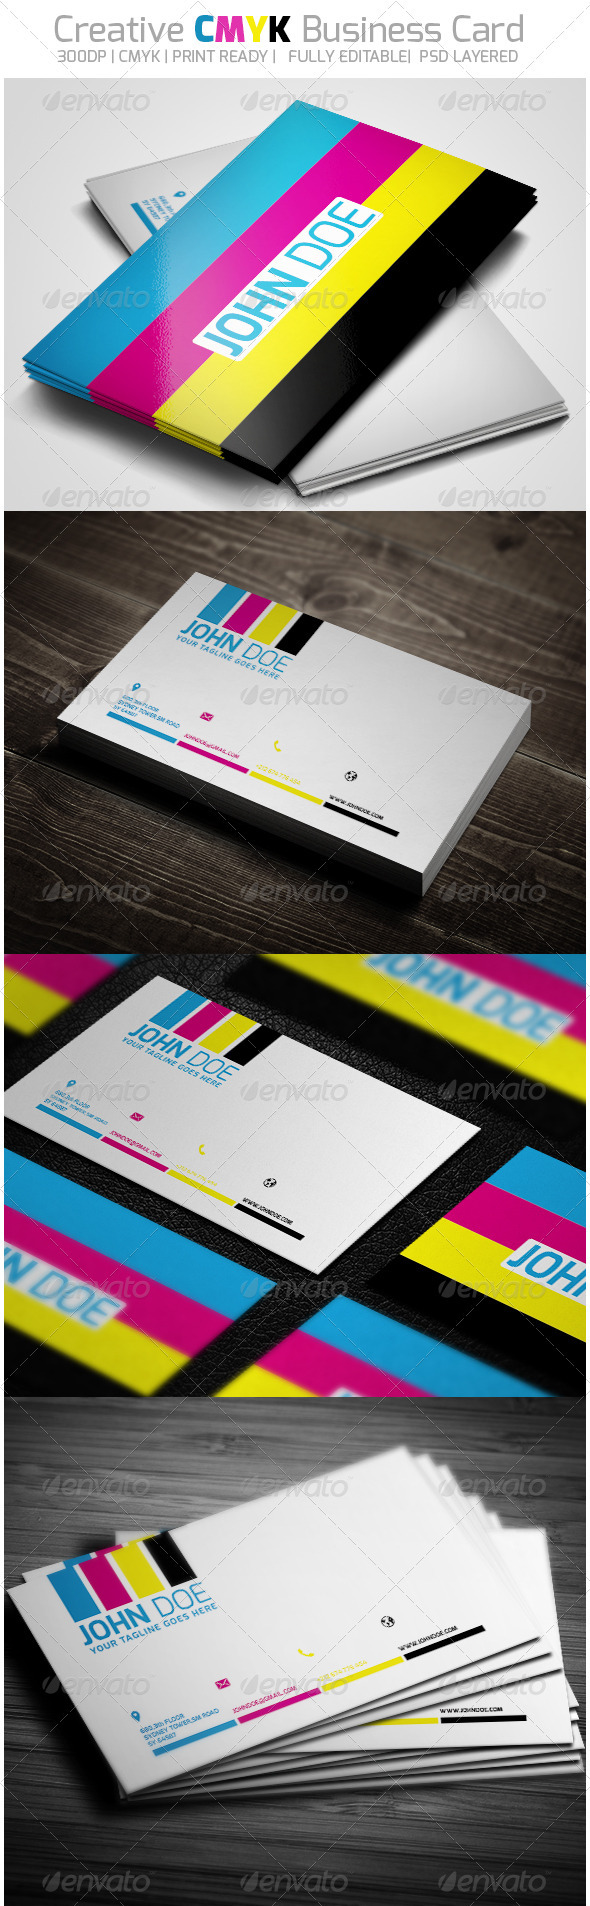 Creative CMYK Business Card | Business cards, Business and Creative